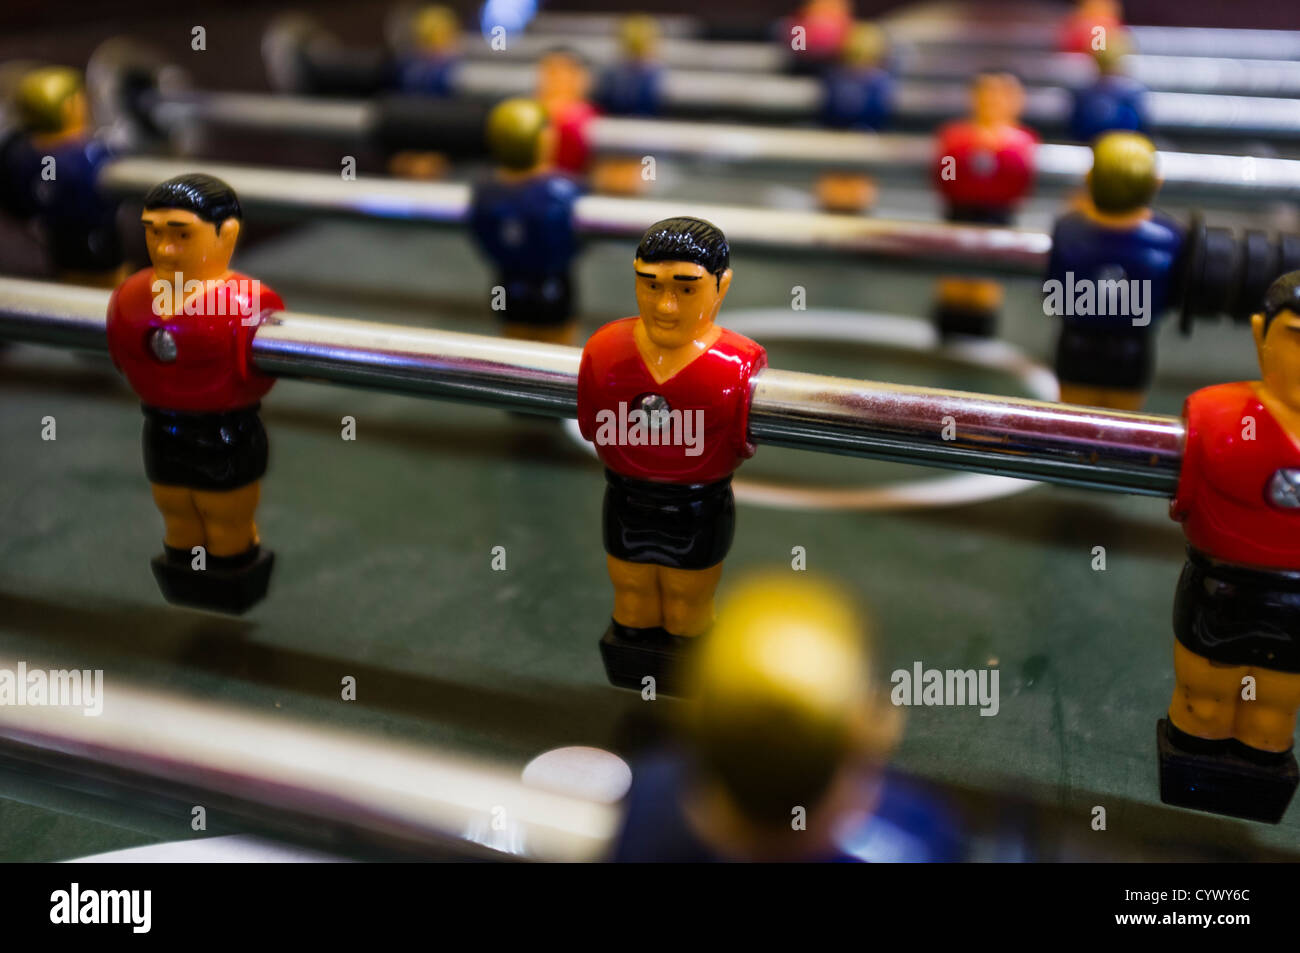 Table football game close up - Stock Image